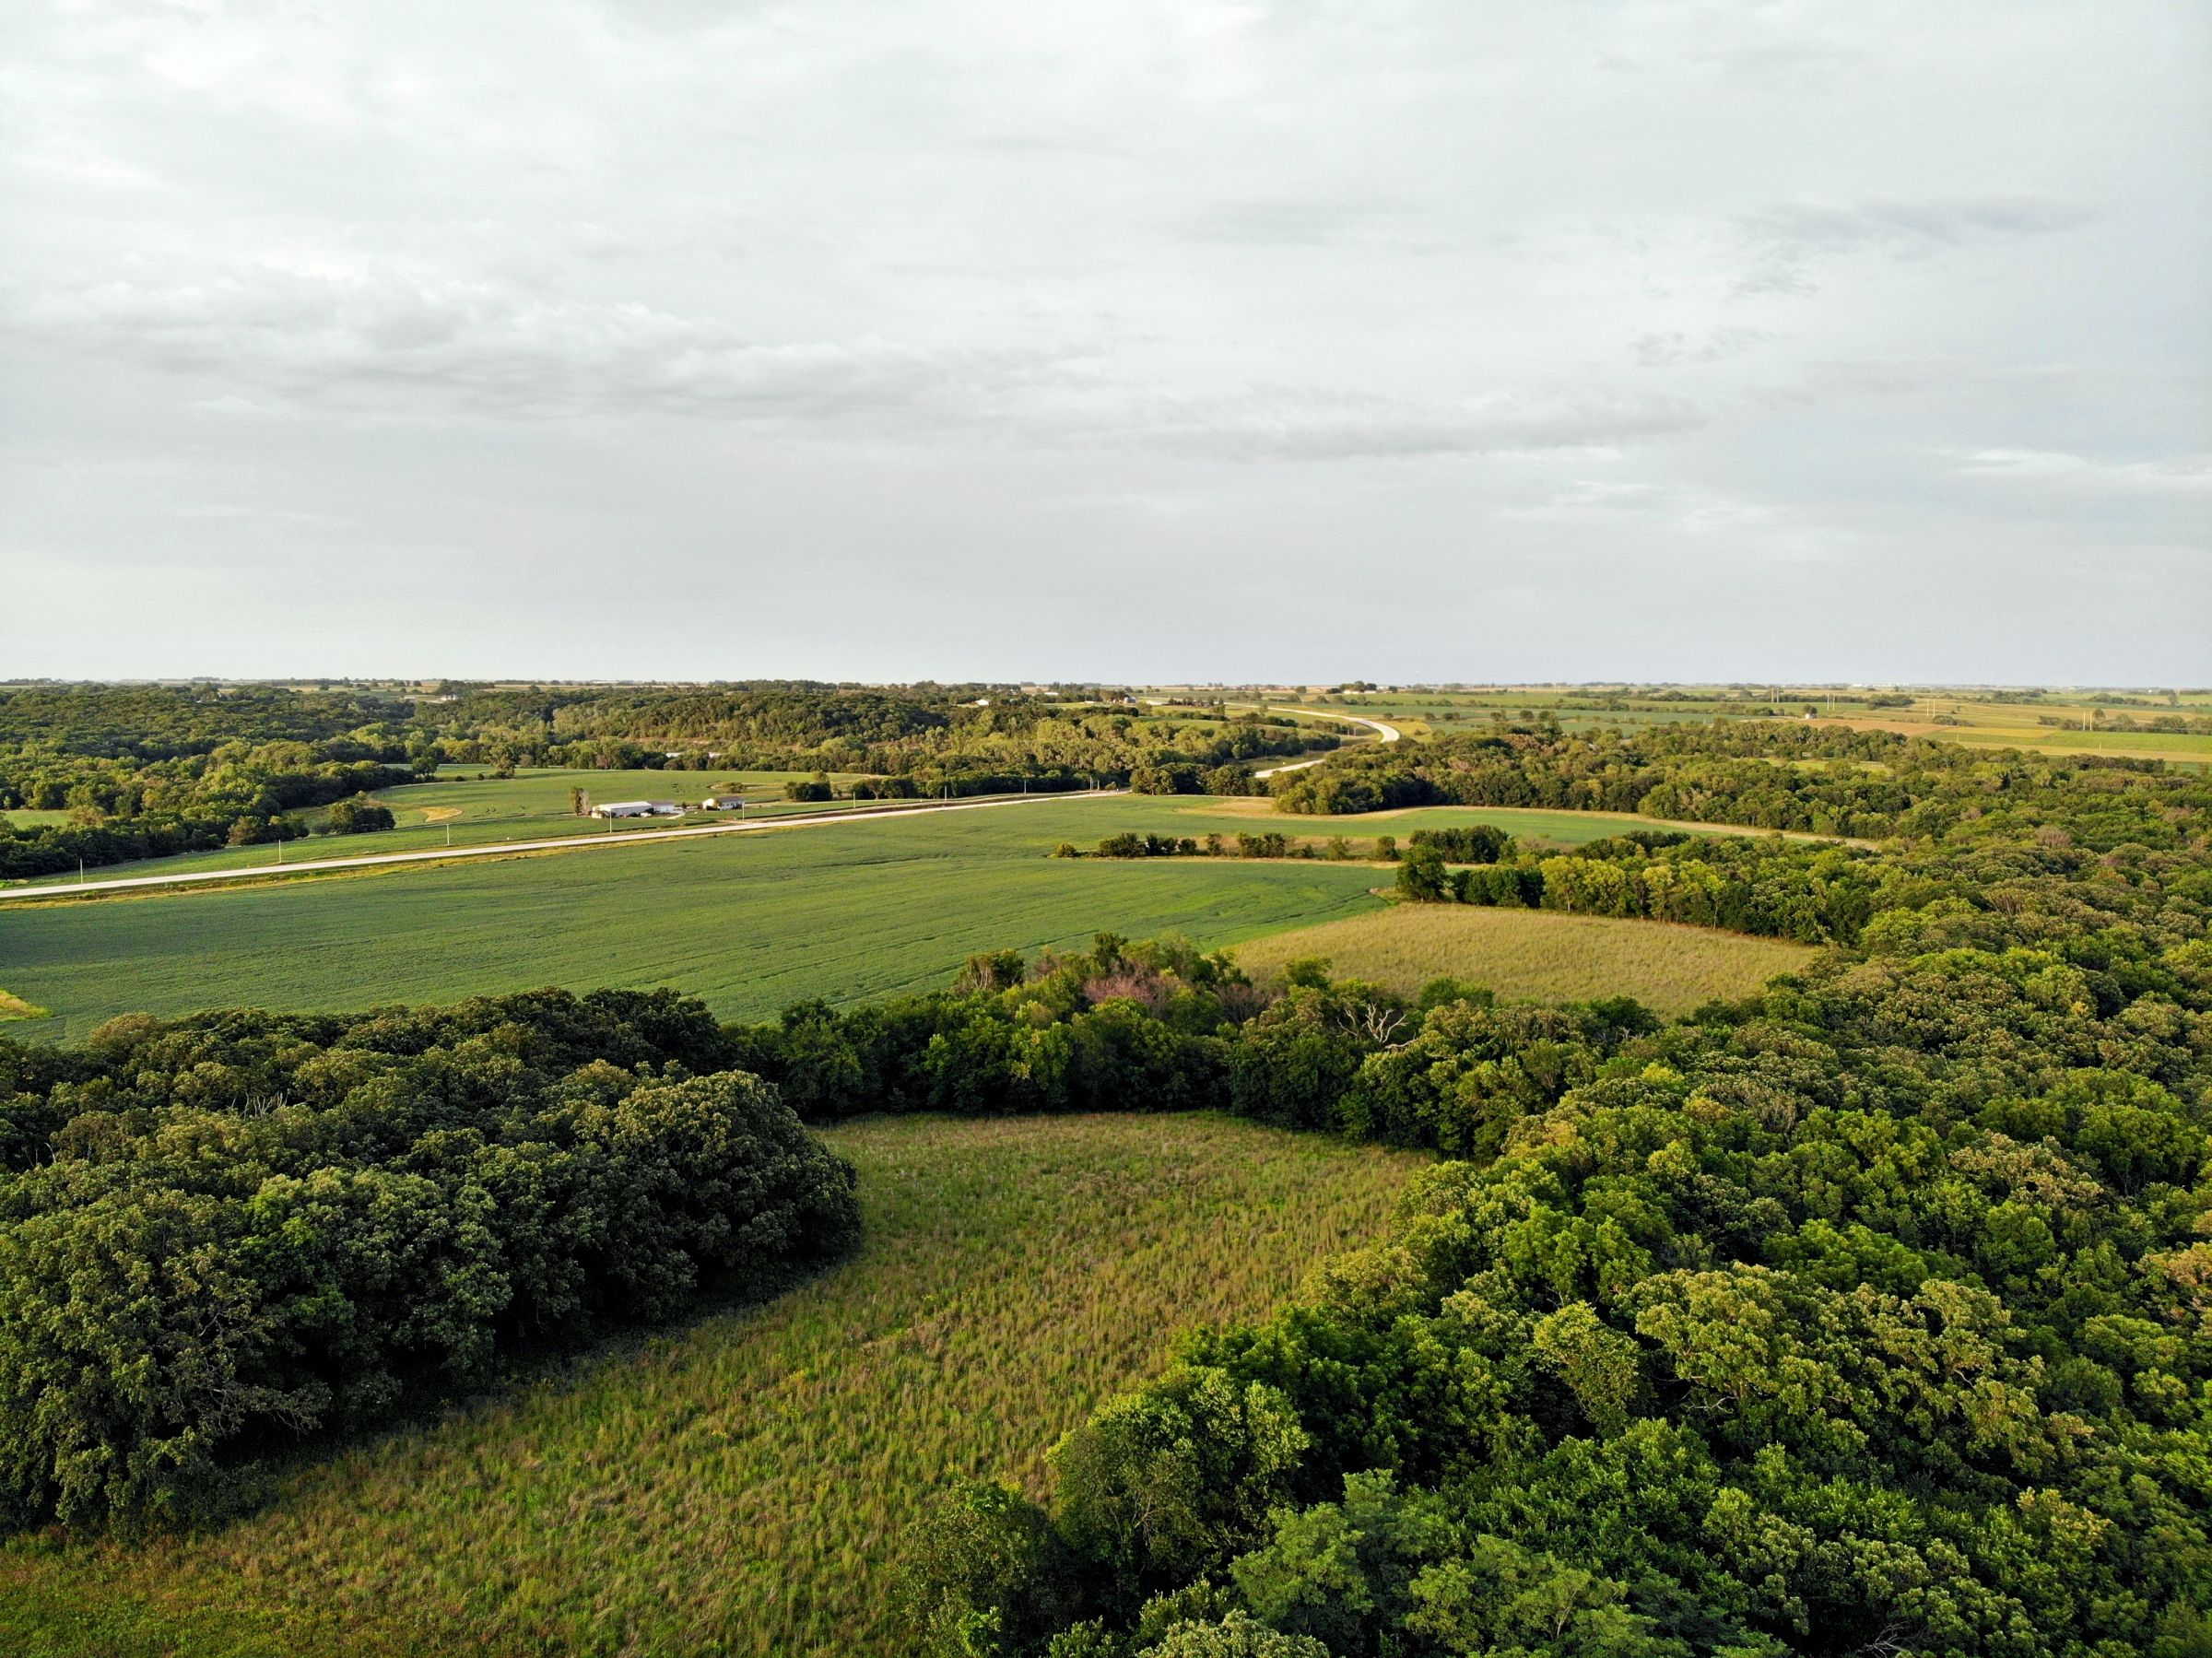 land-madison-county-iowa-123-acres-listing-number-15122-5-2020-08-24-022310.jpg